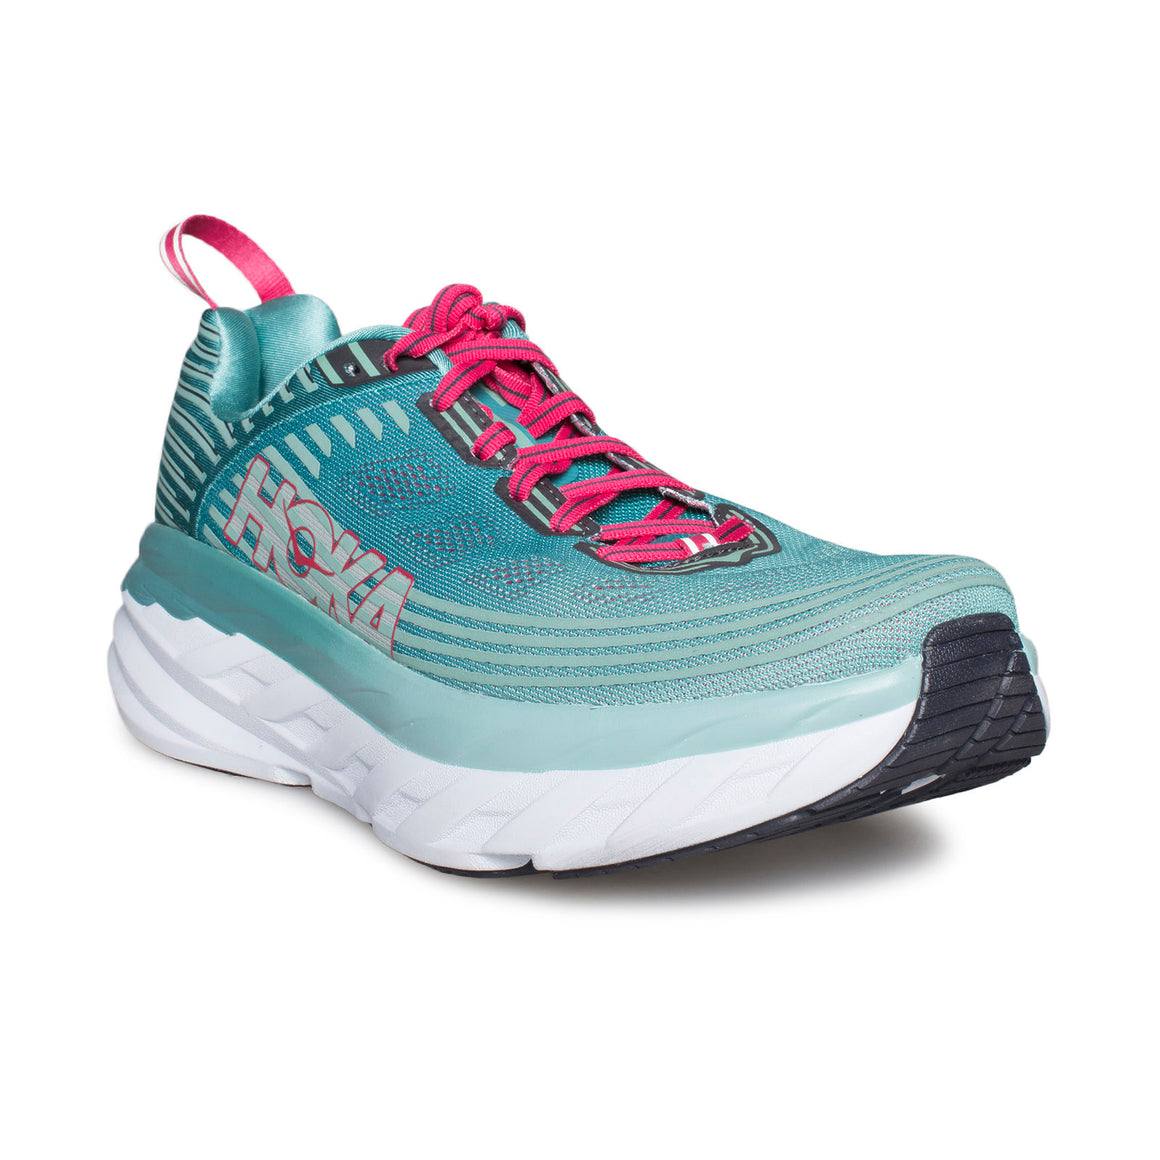 HOKA ONE ONE Bondi 6 Canton / Green-Blue Slate Running Shoes - Women's